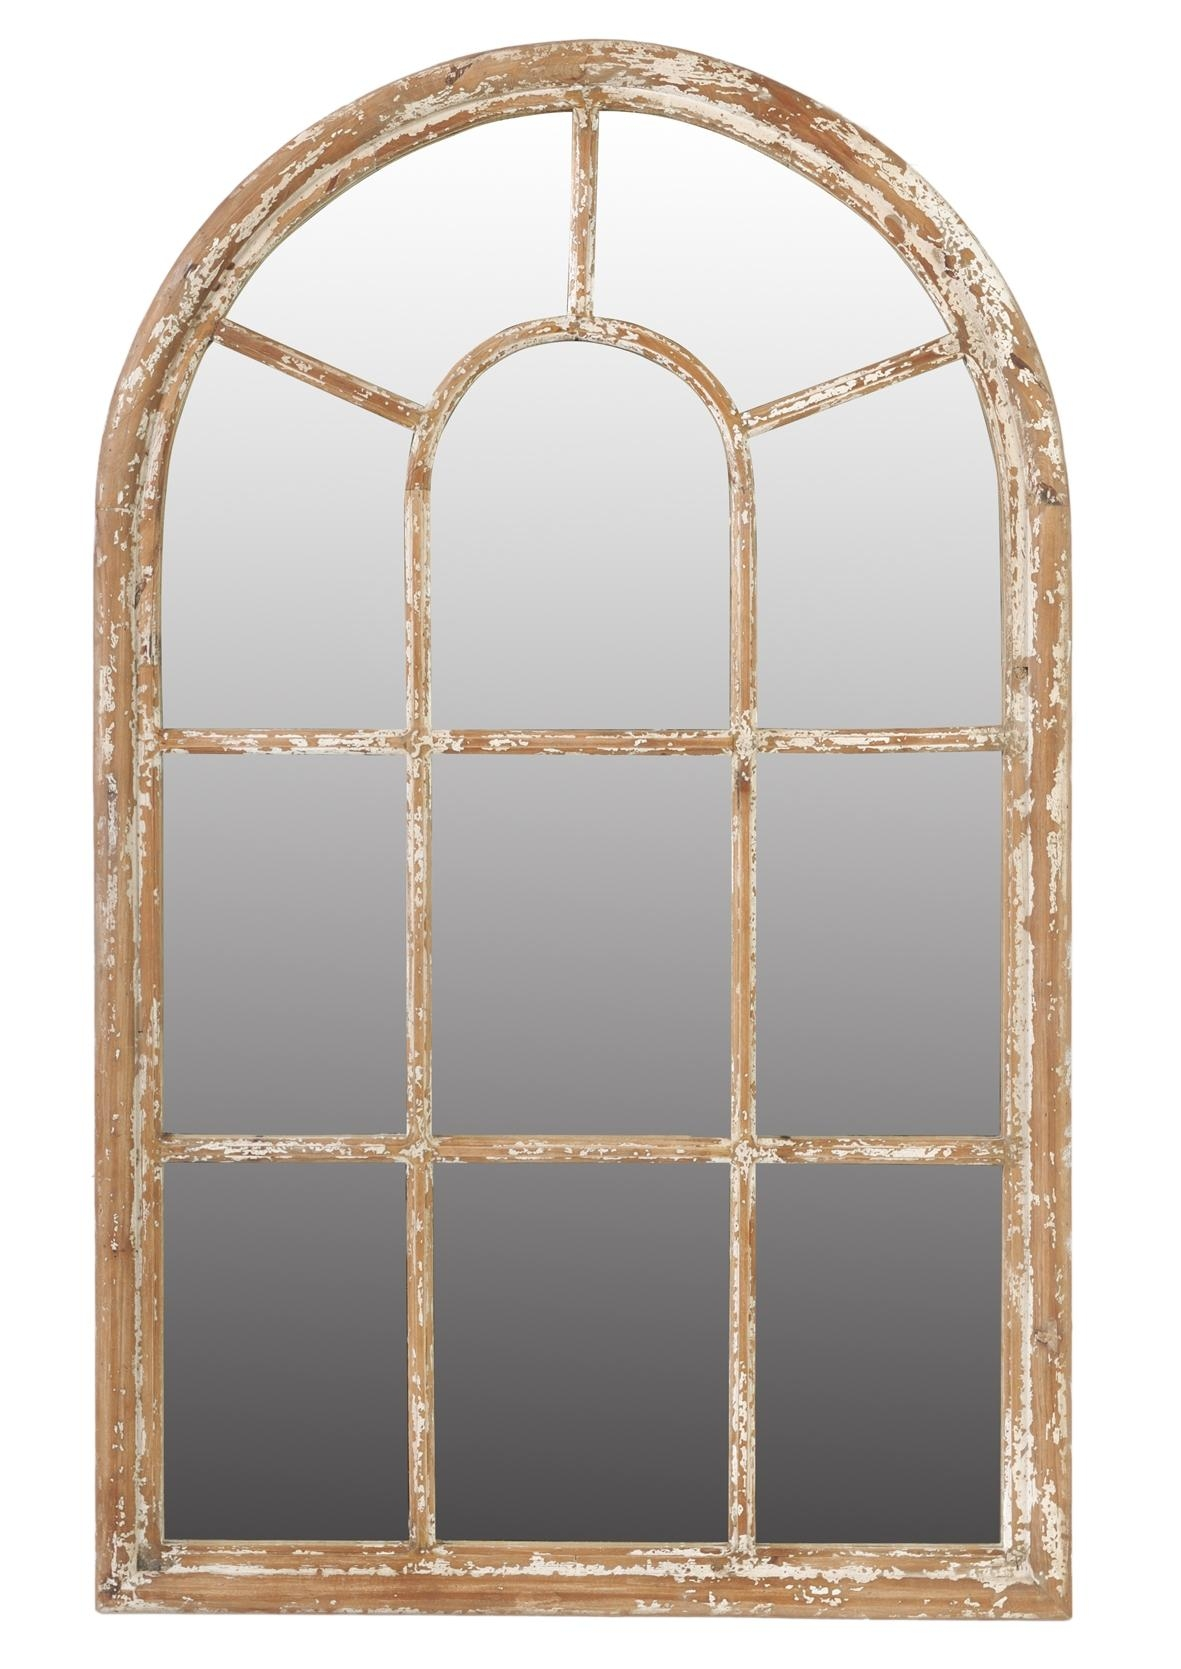 Fresh Austin Antique Arched Window Mirror #19768 Throughout Antique Arched Mirror (Image 13 of 20)